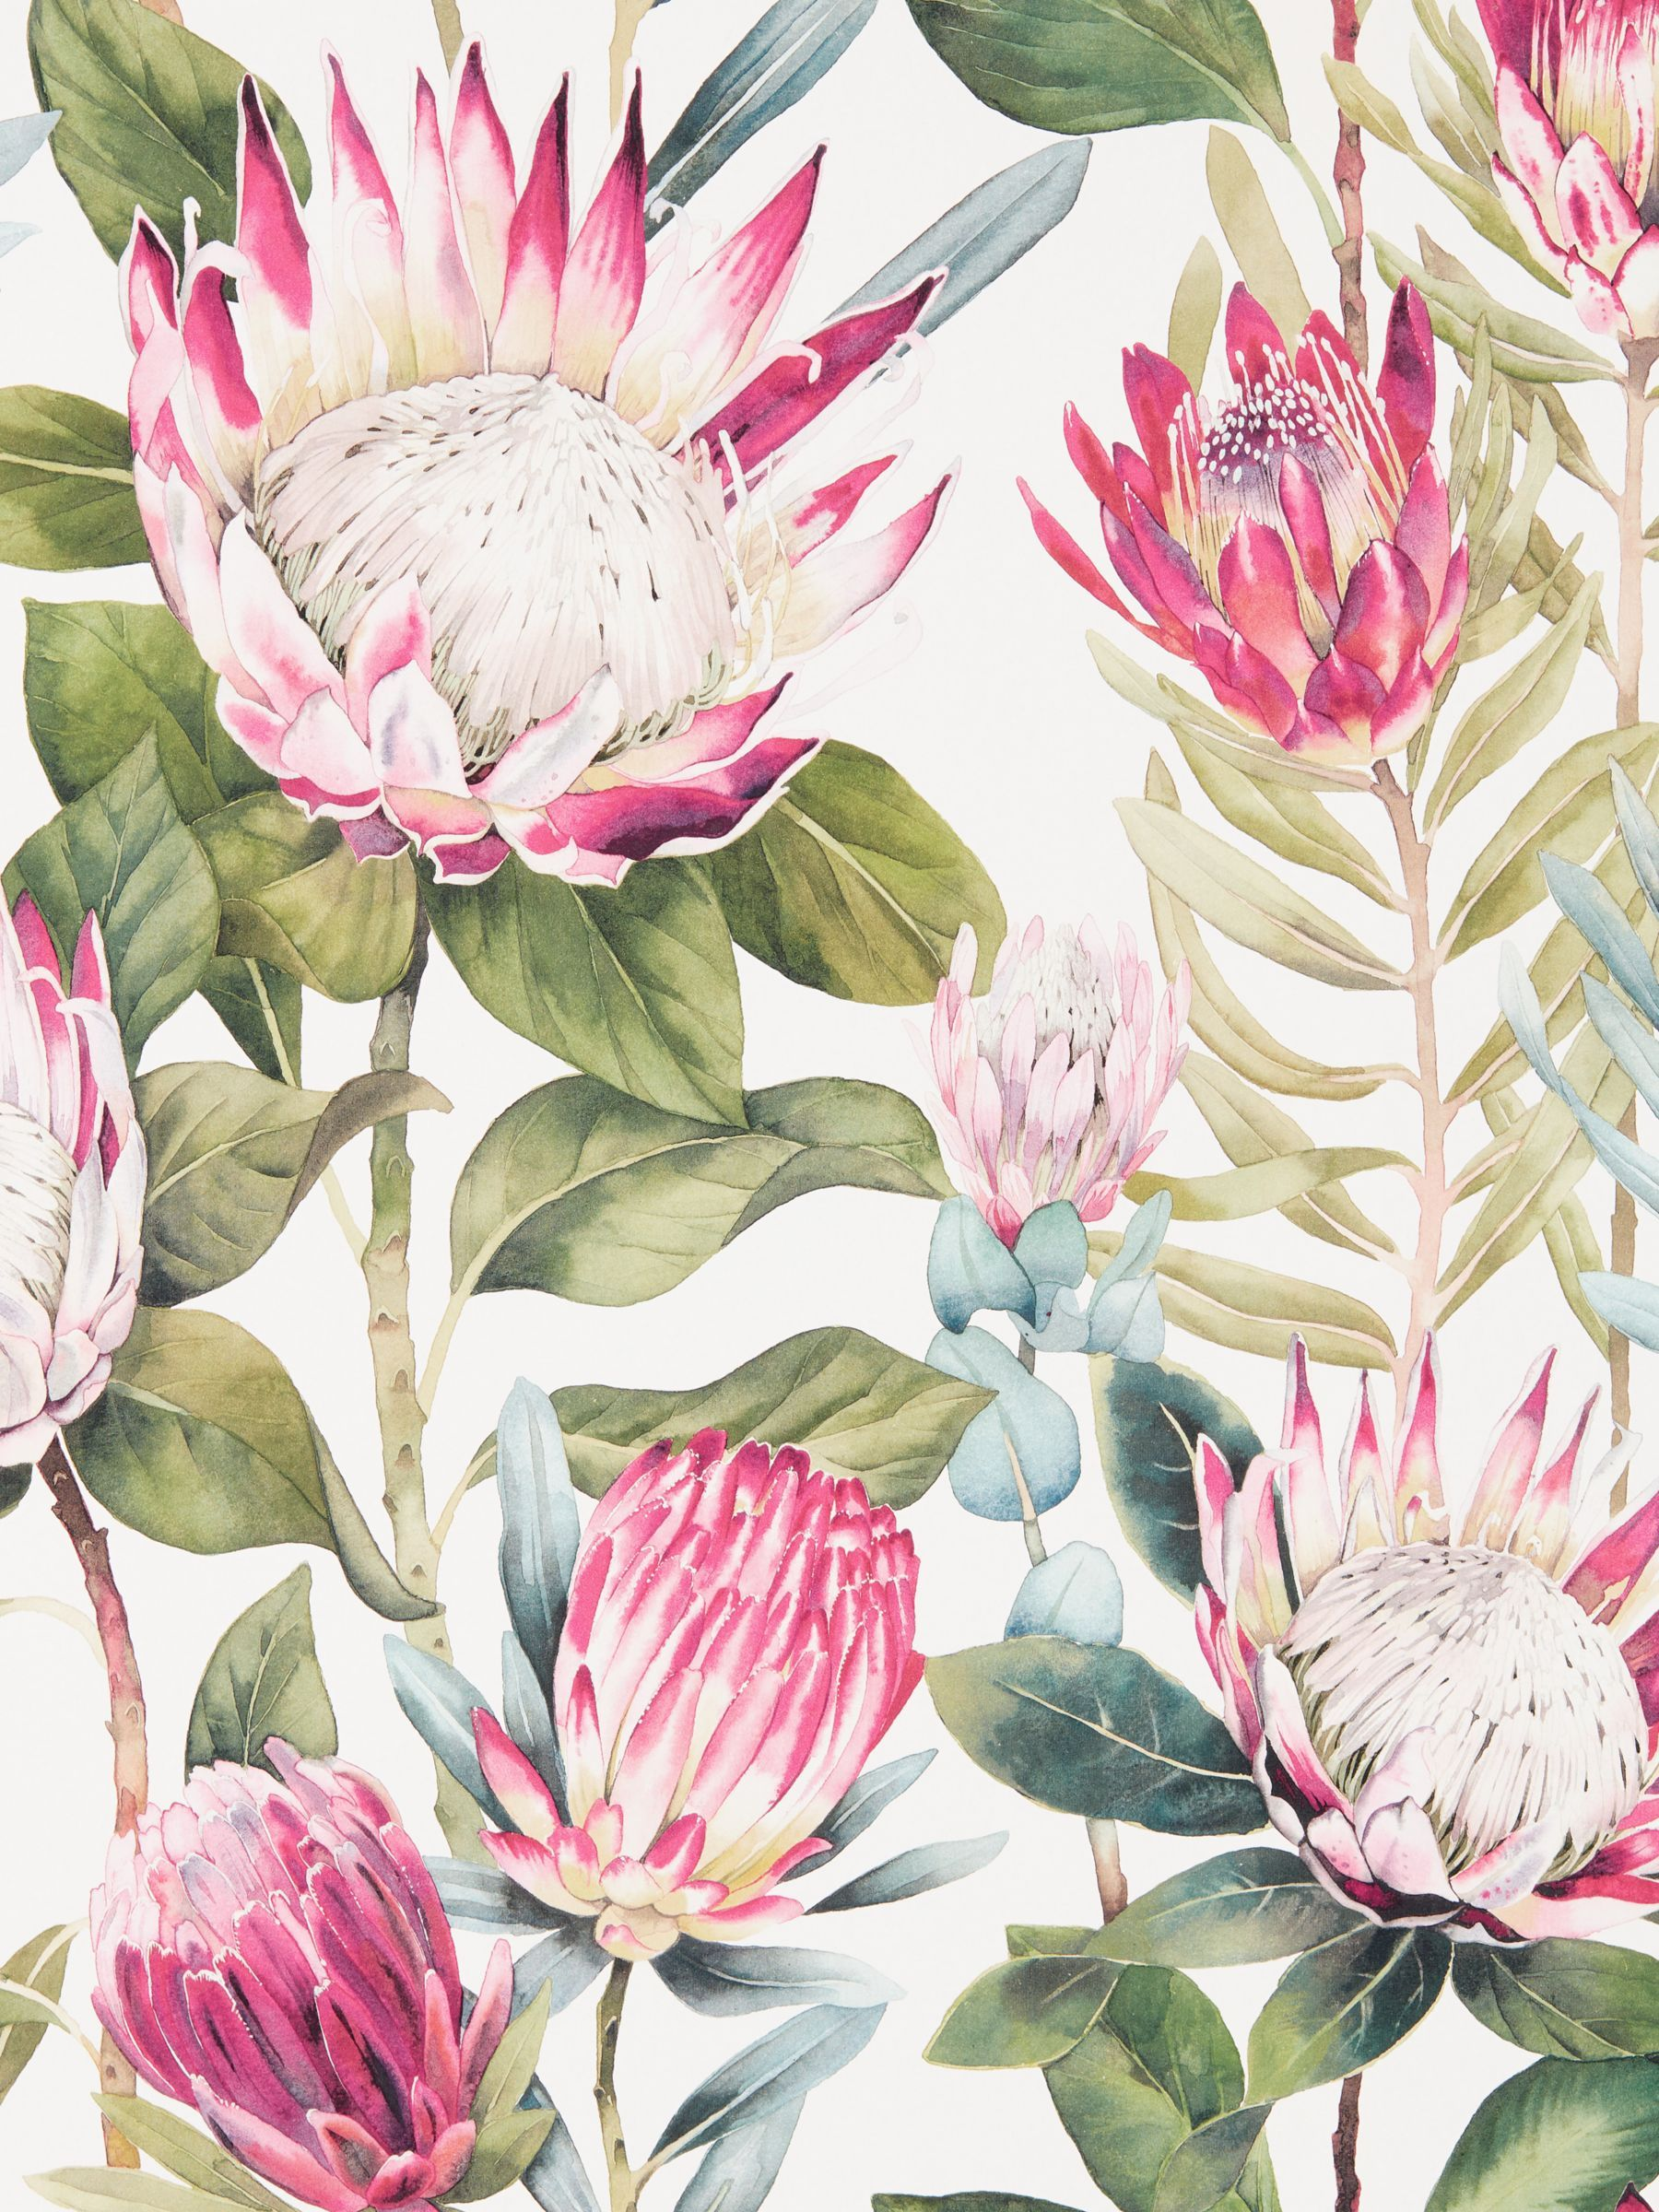 Sanderson King Protea Wallpaper, DGLW216646 in 2020 King